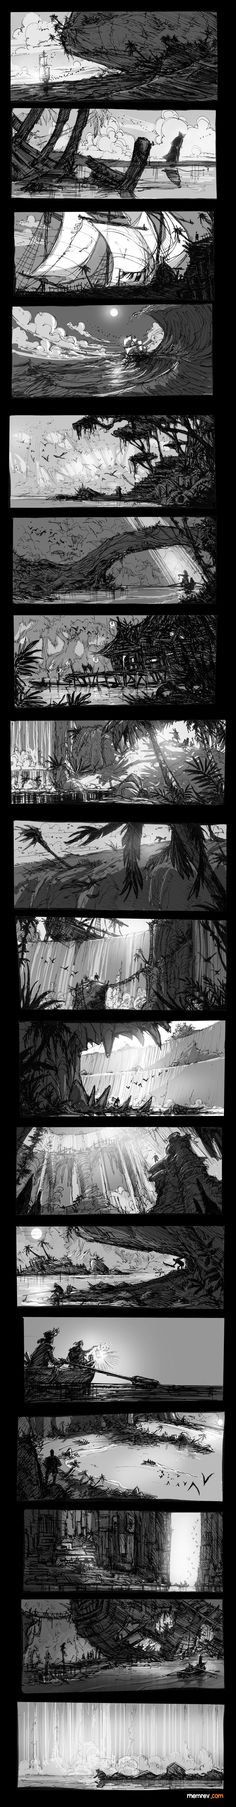 RHEMREV.COM | Visual development #LandscapeDrawing